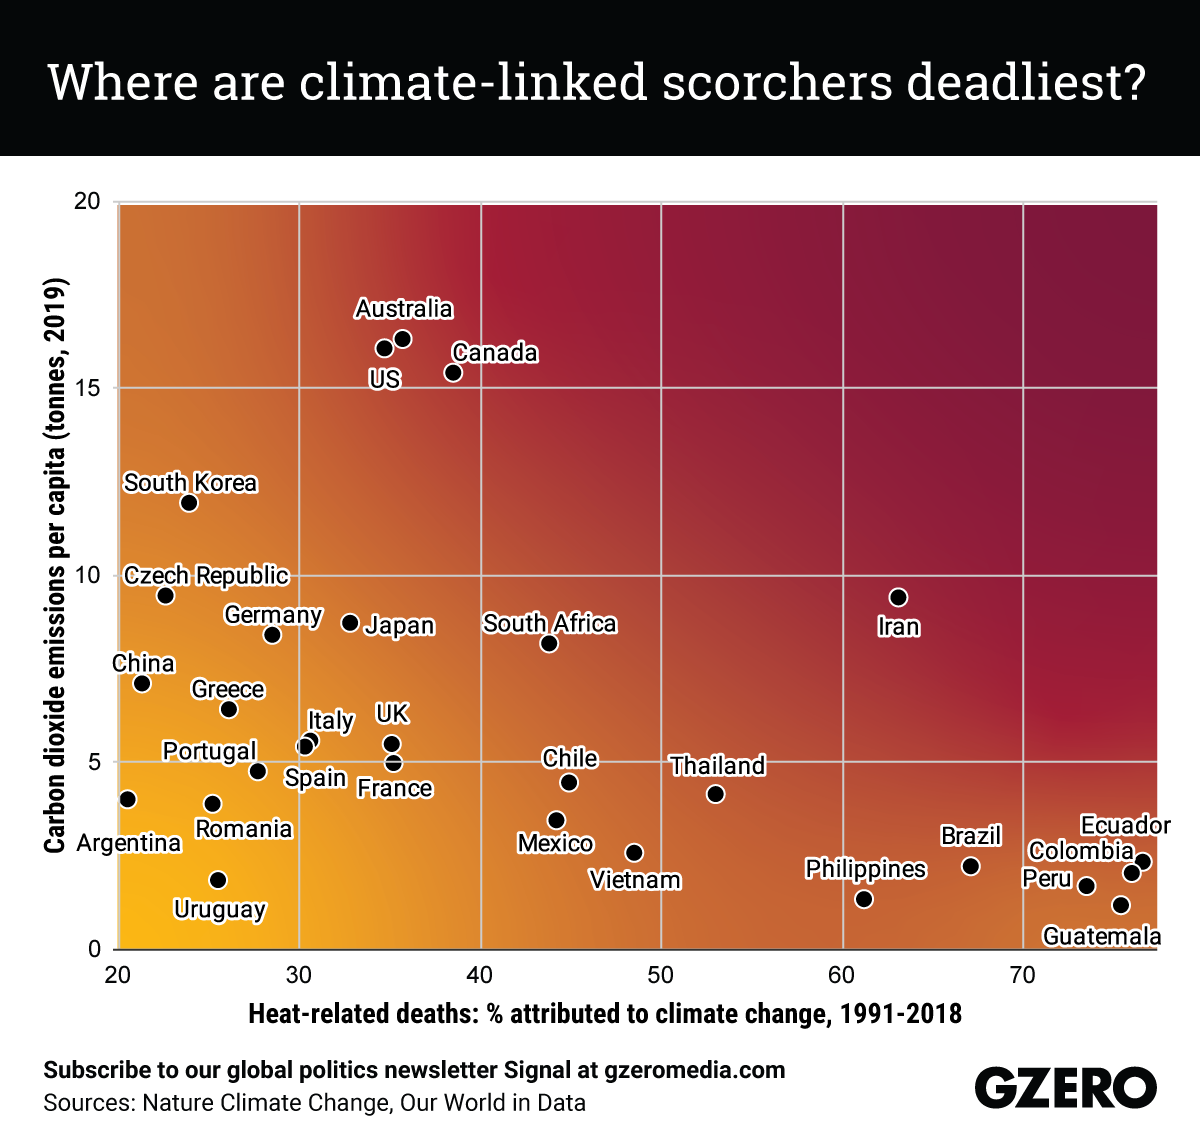 The Graphic Truth: Where are climate-linked scorchers deadliest?